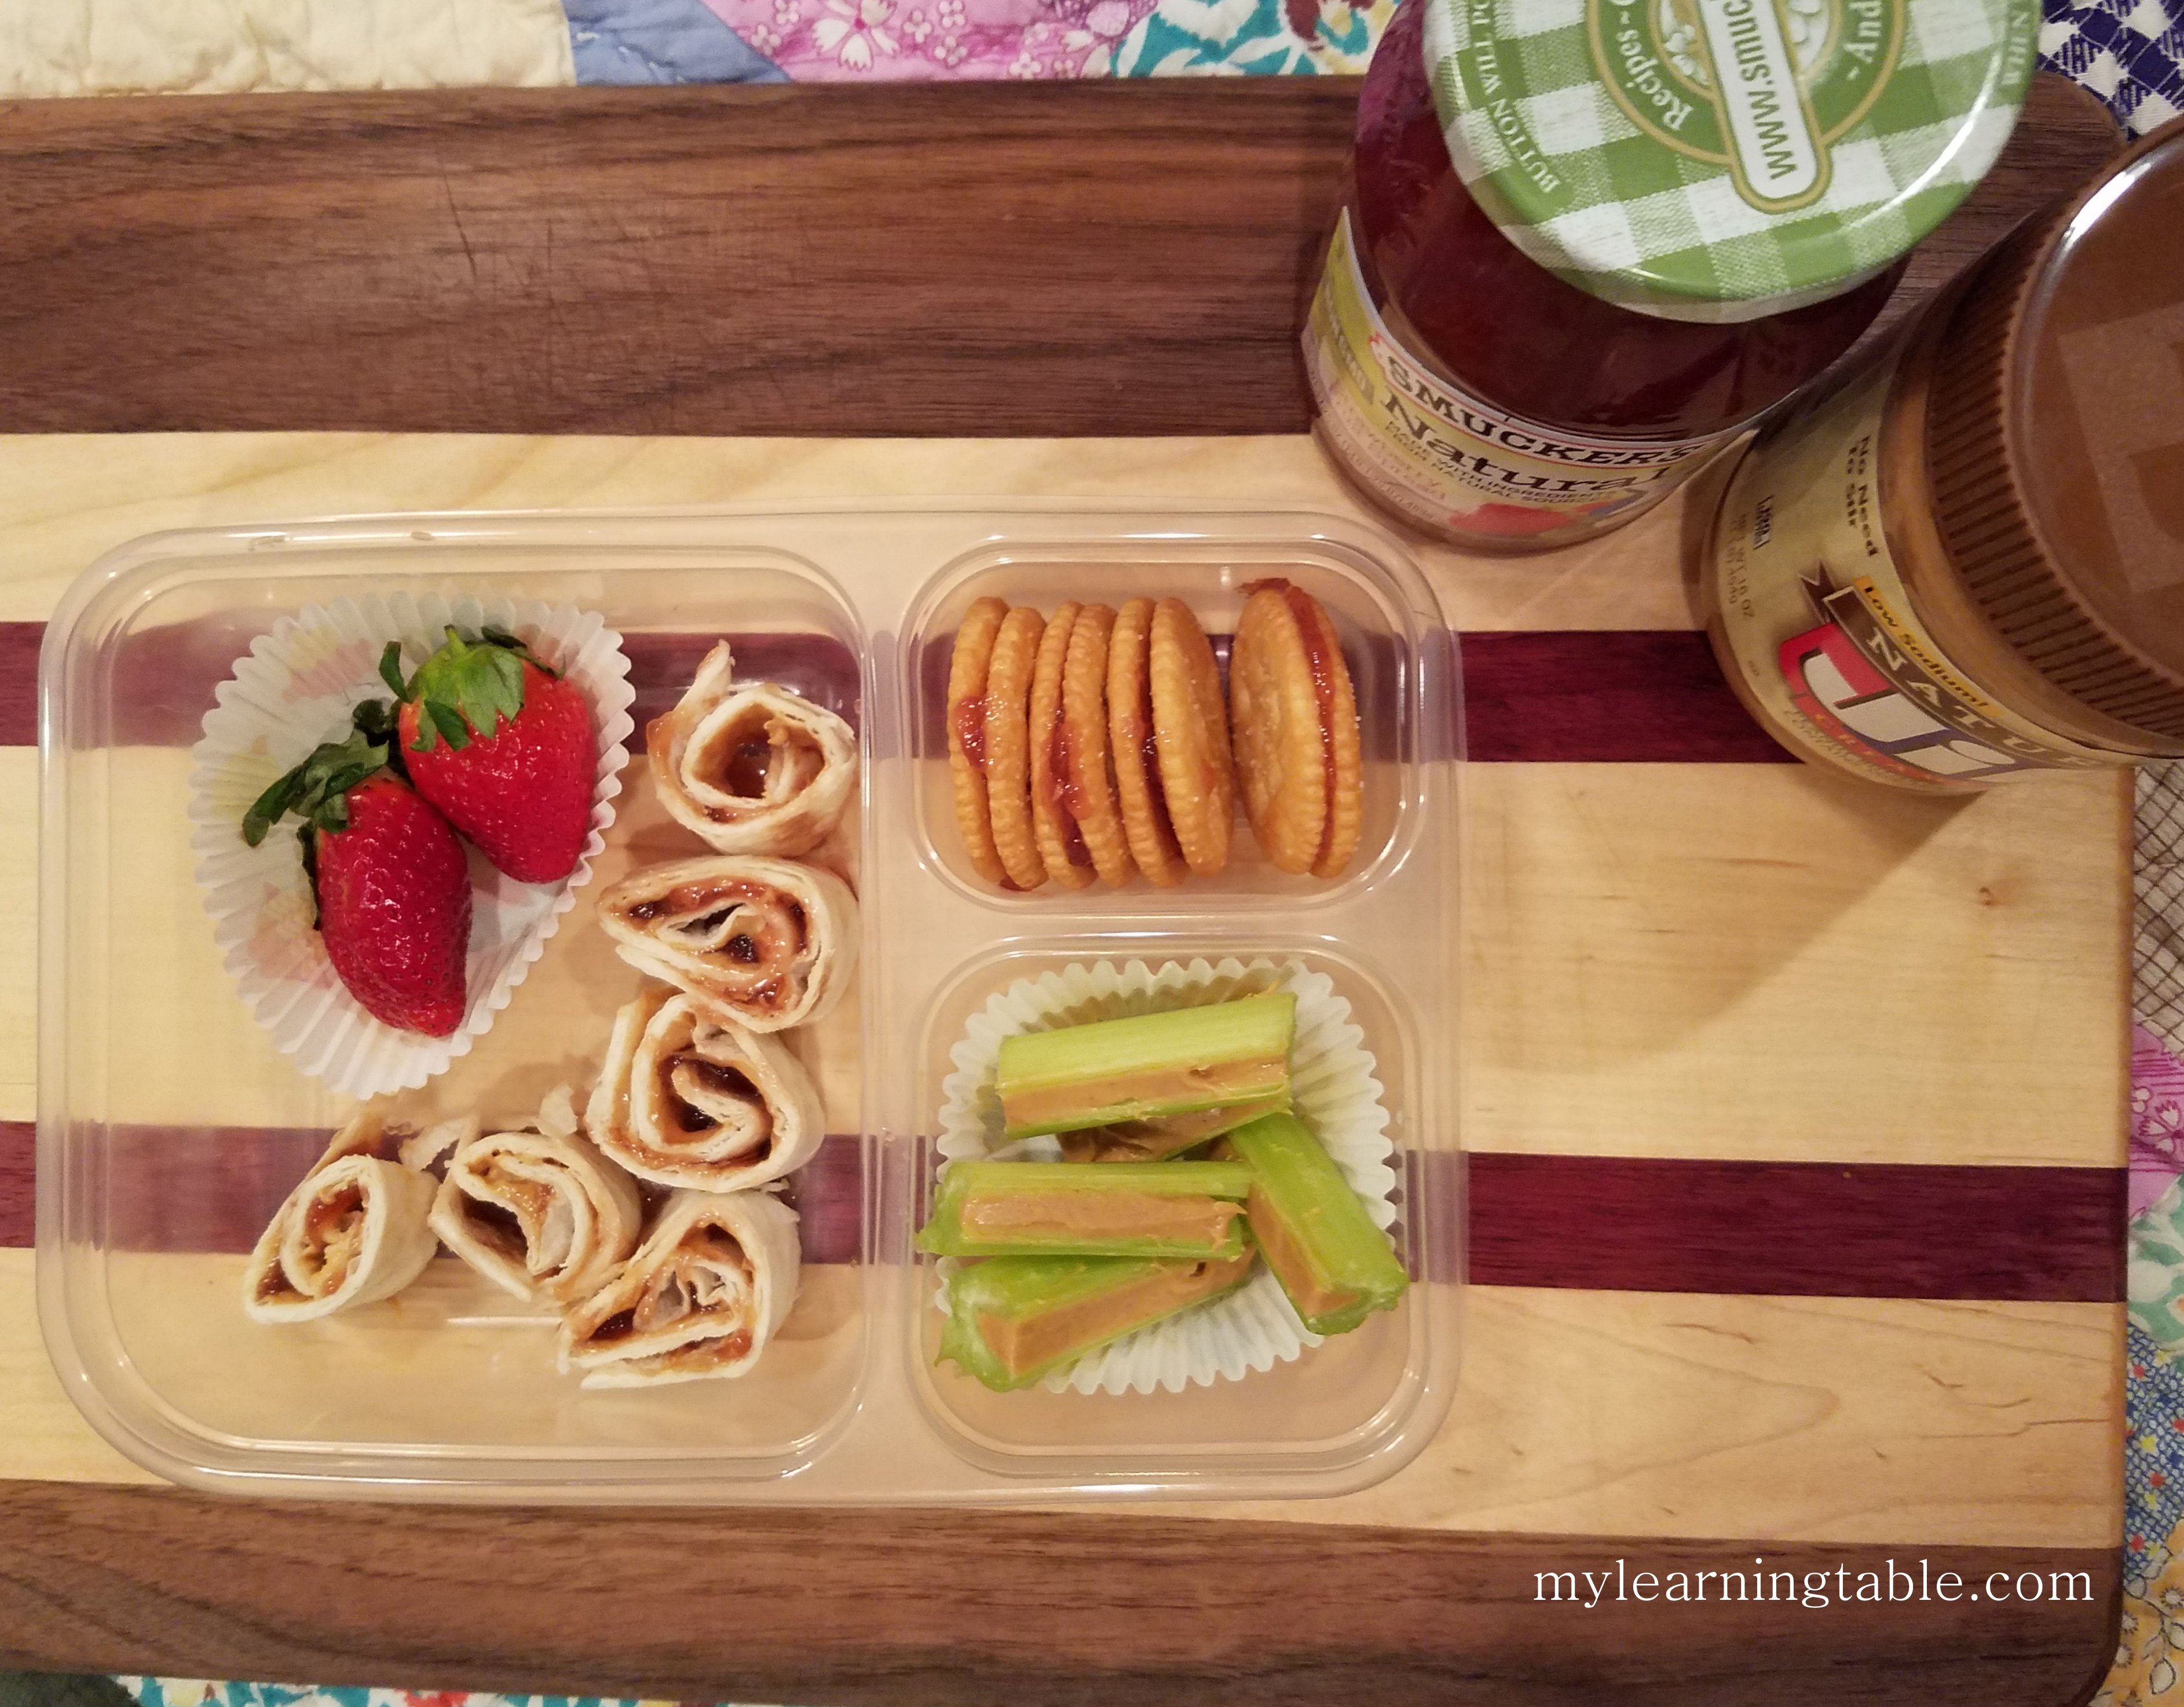 PBJ Bento Fun and Healthy School Day Lunch mylearningtable.com